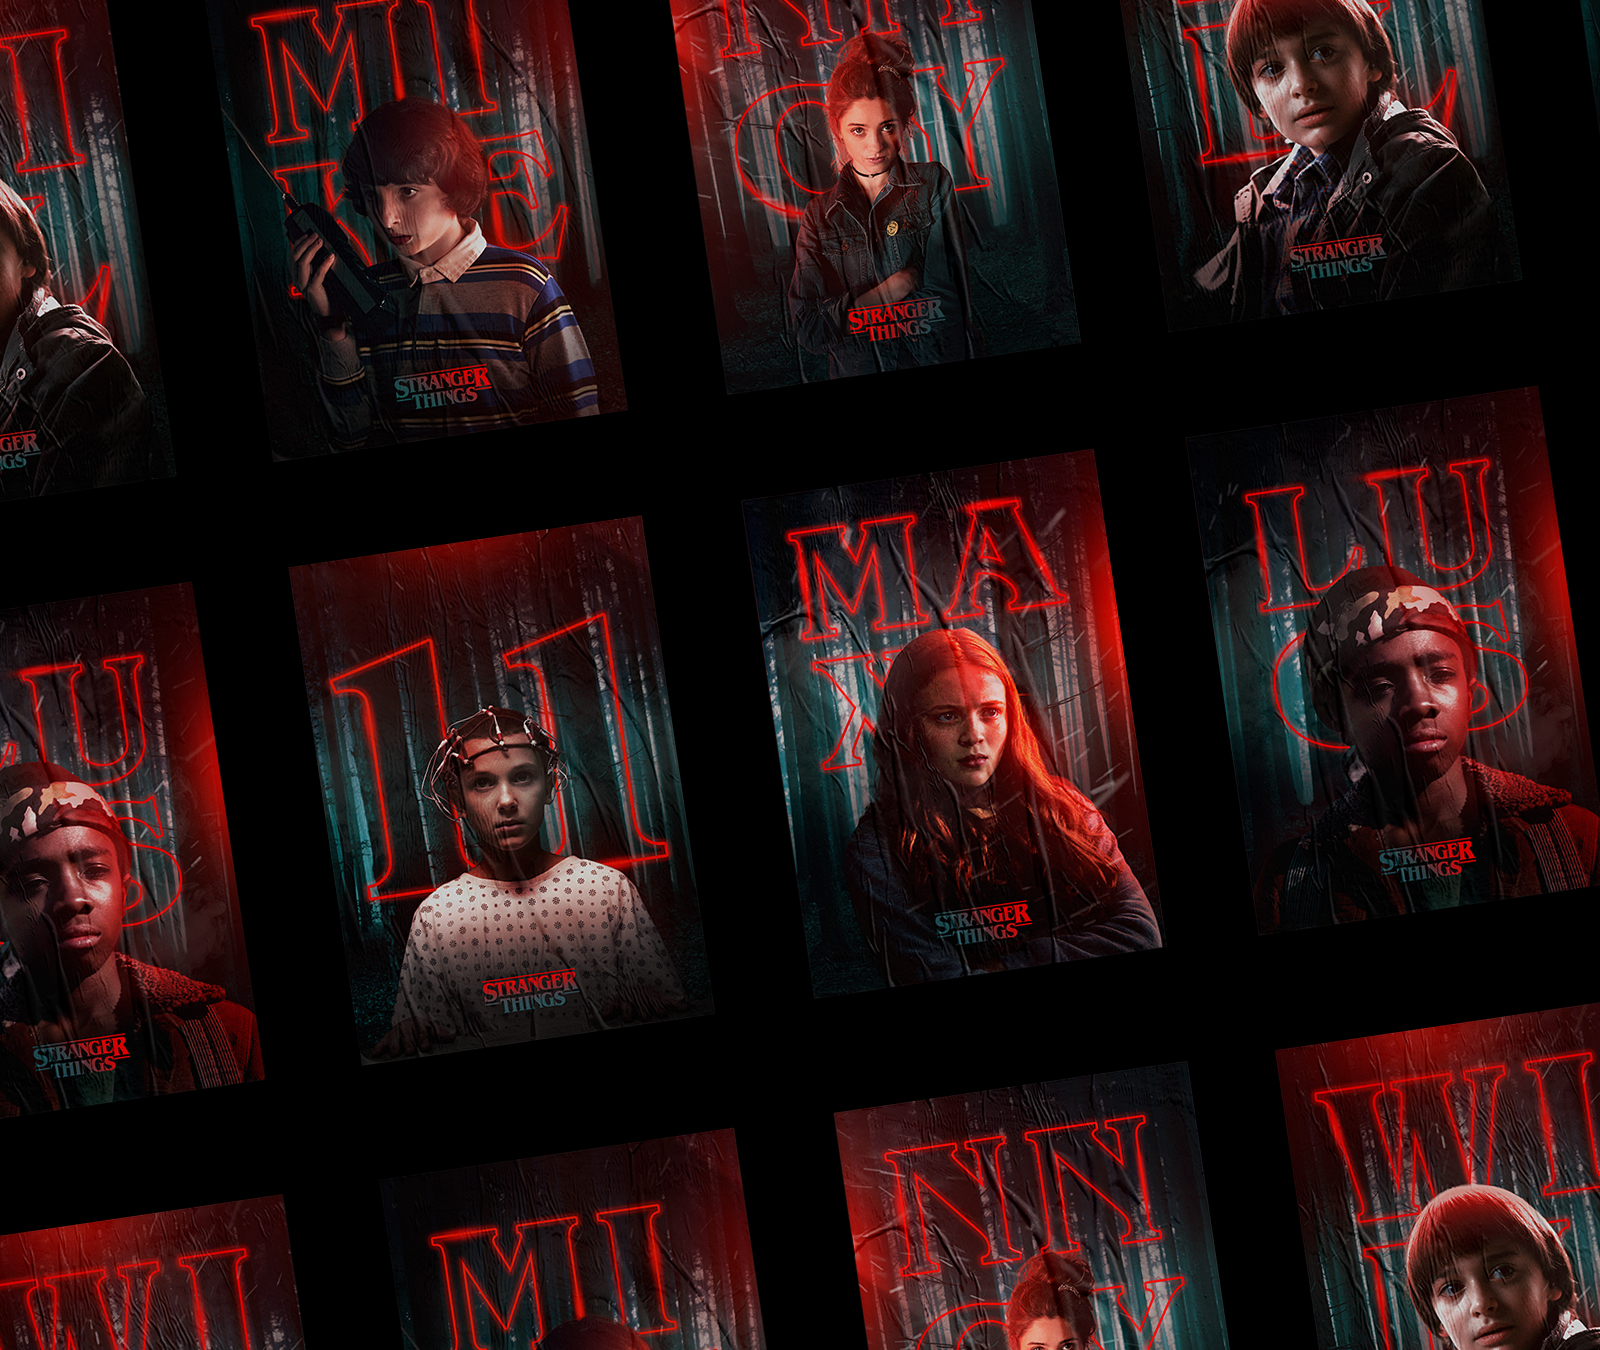 Spooky Stranger Things Characters Posters